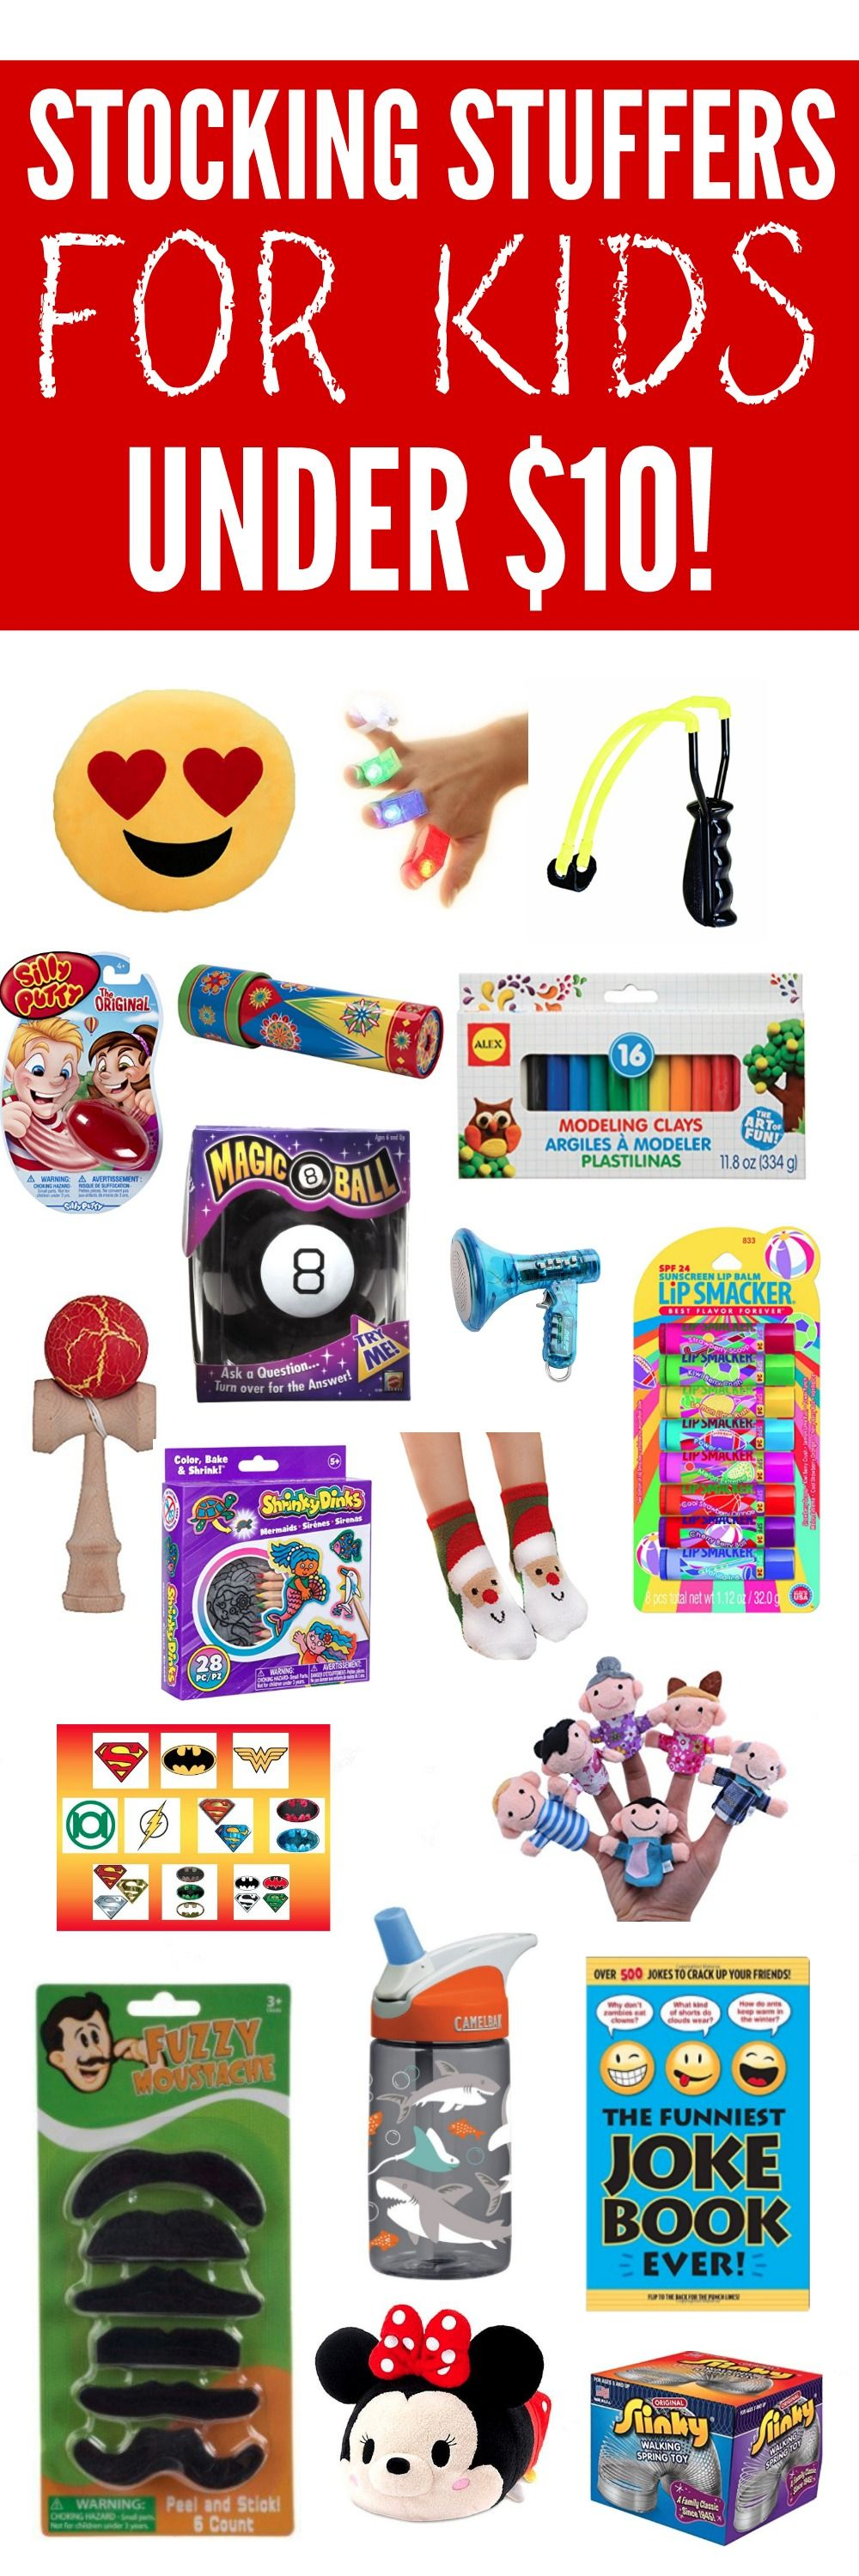 30 Stocking Stuffers Under $10 FOR KIDS | Stocking ...